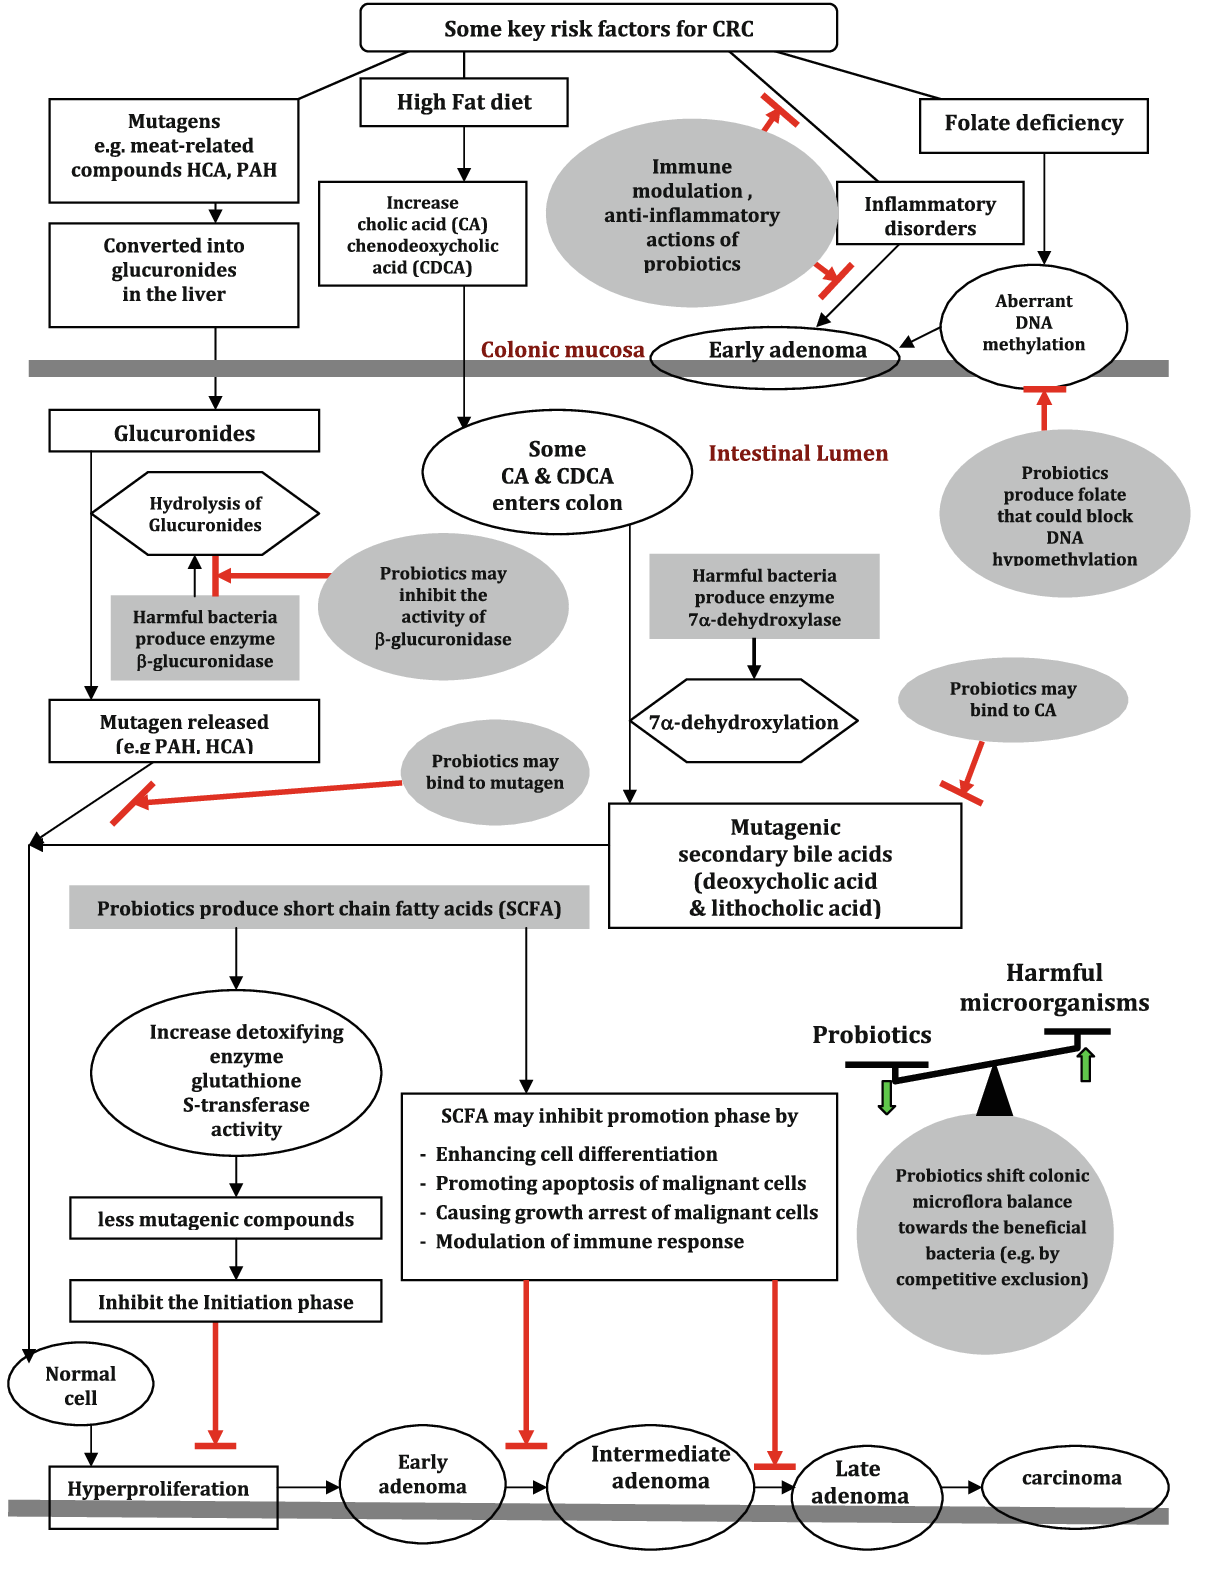 Figure 1 From A Potential Role Of Probiotics In Colorectal Cancer Prevention Review Of Possible Mechanisms Of Action Semantic Scholar